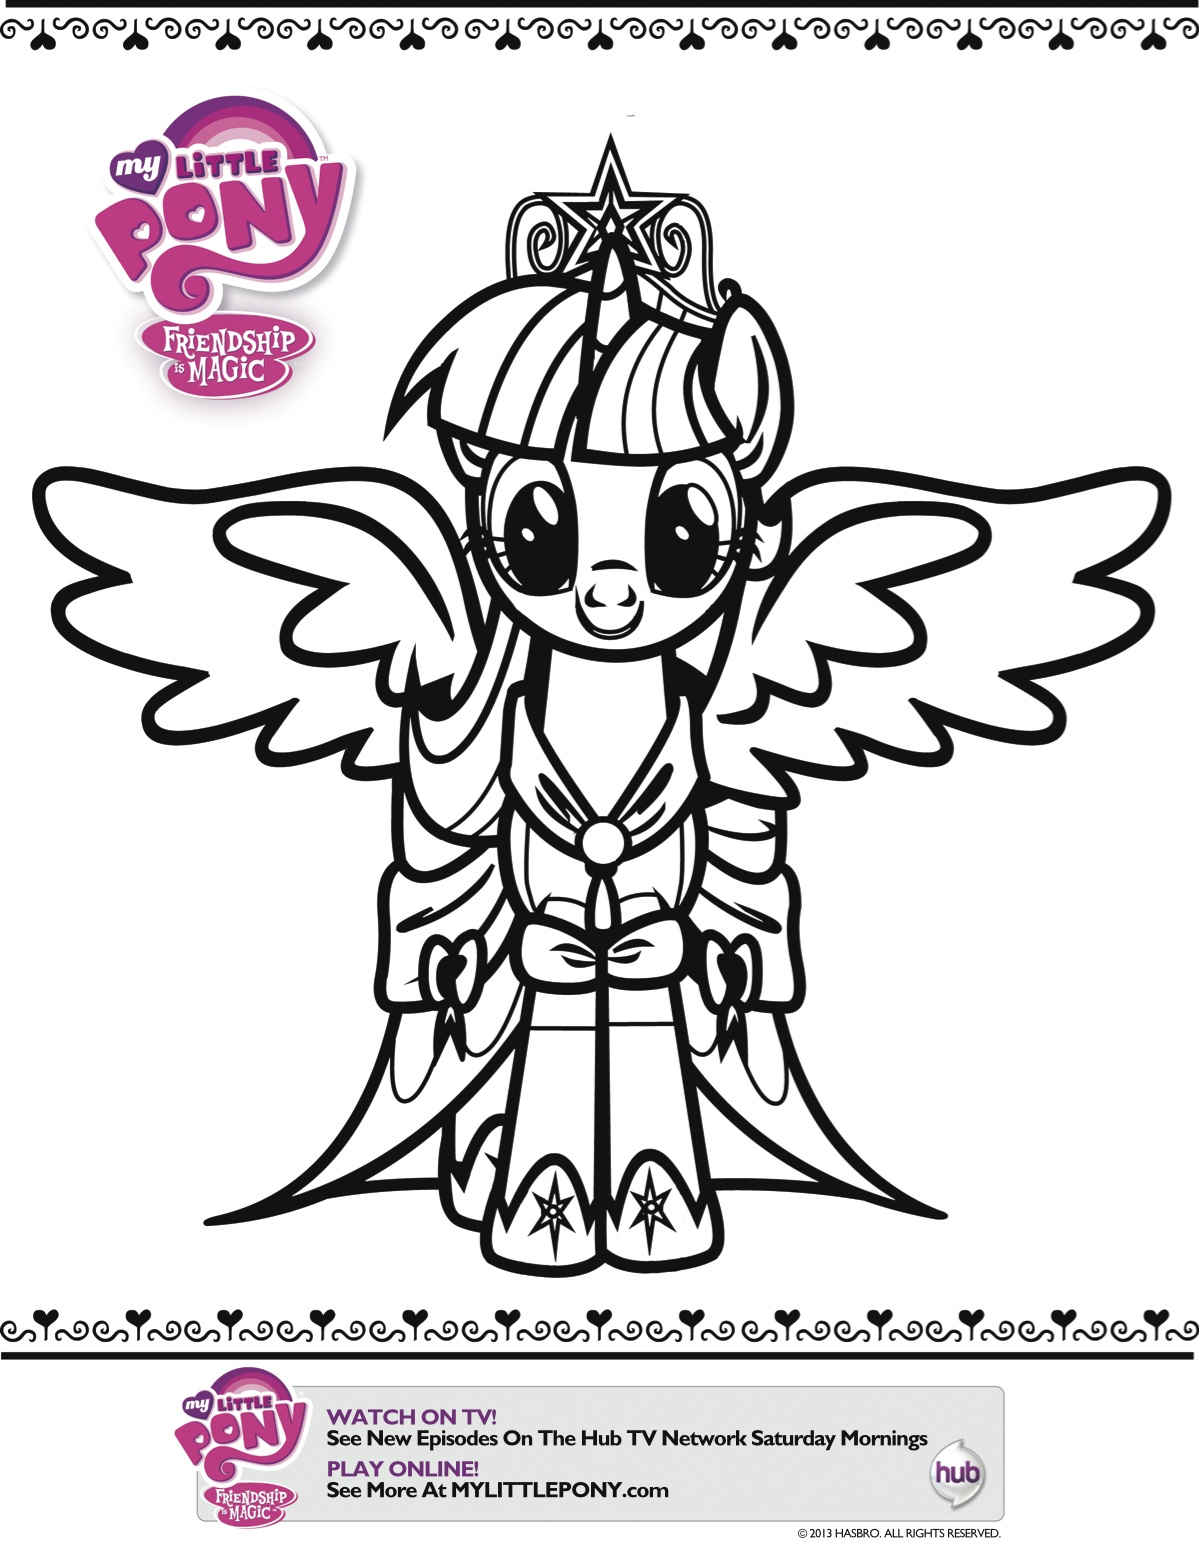 Twilight Sparkle Coloring Sheet Reelmama Com Princess Twilight Sparkle Coloring Pages